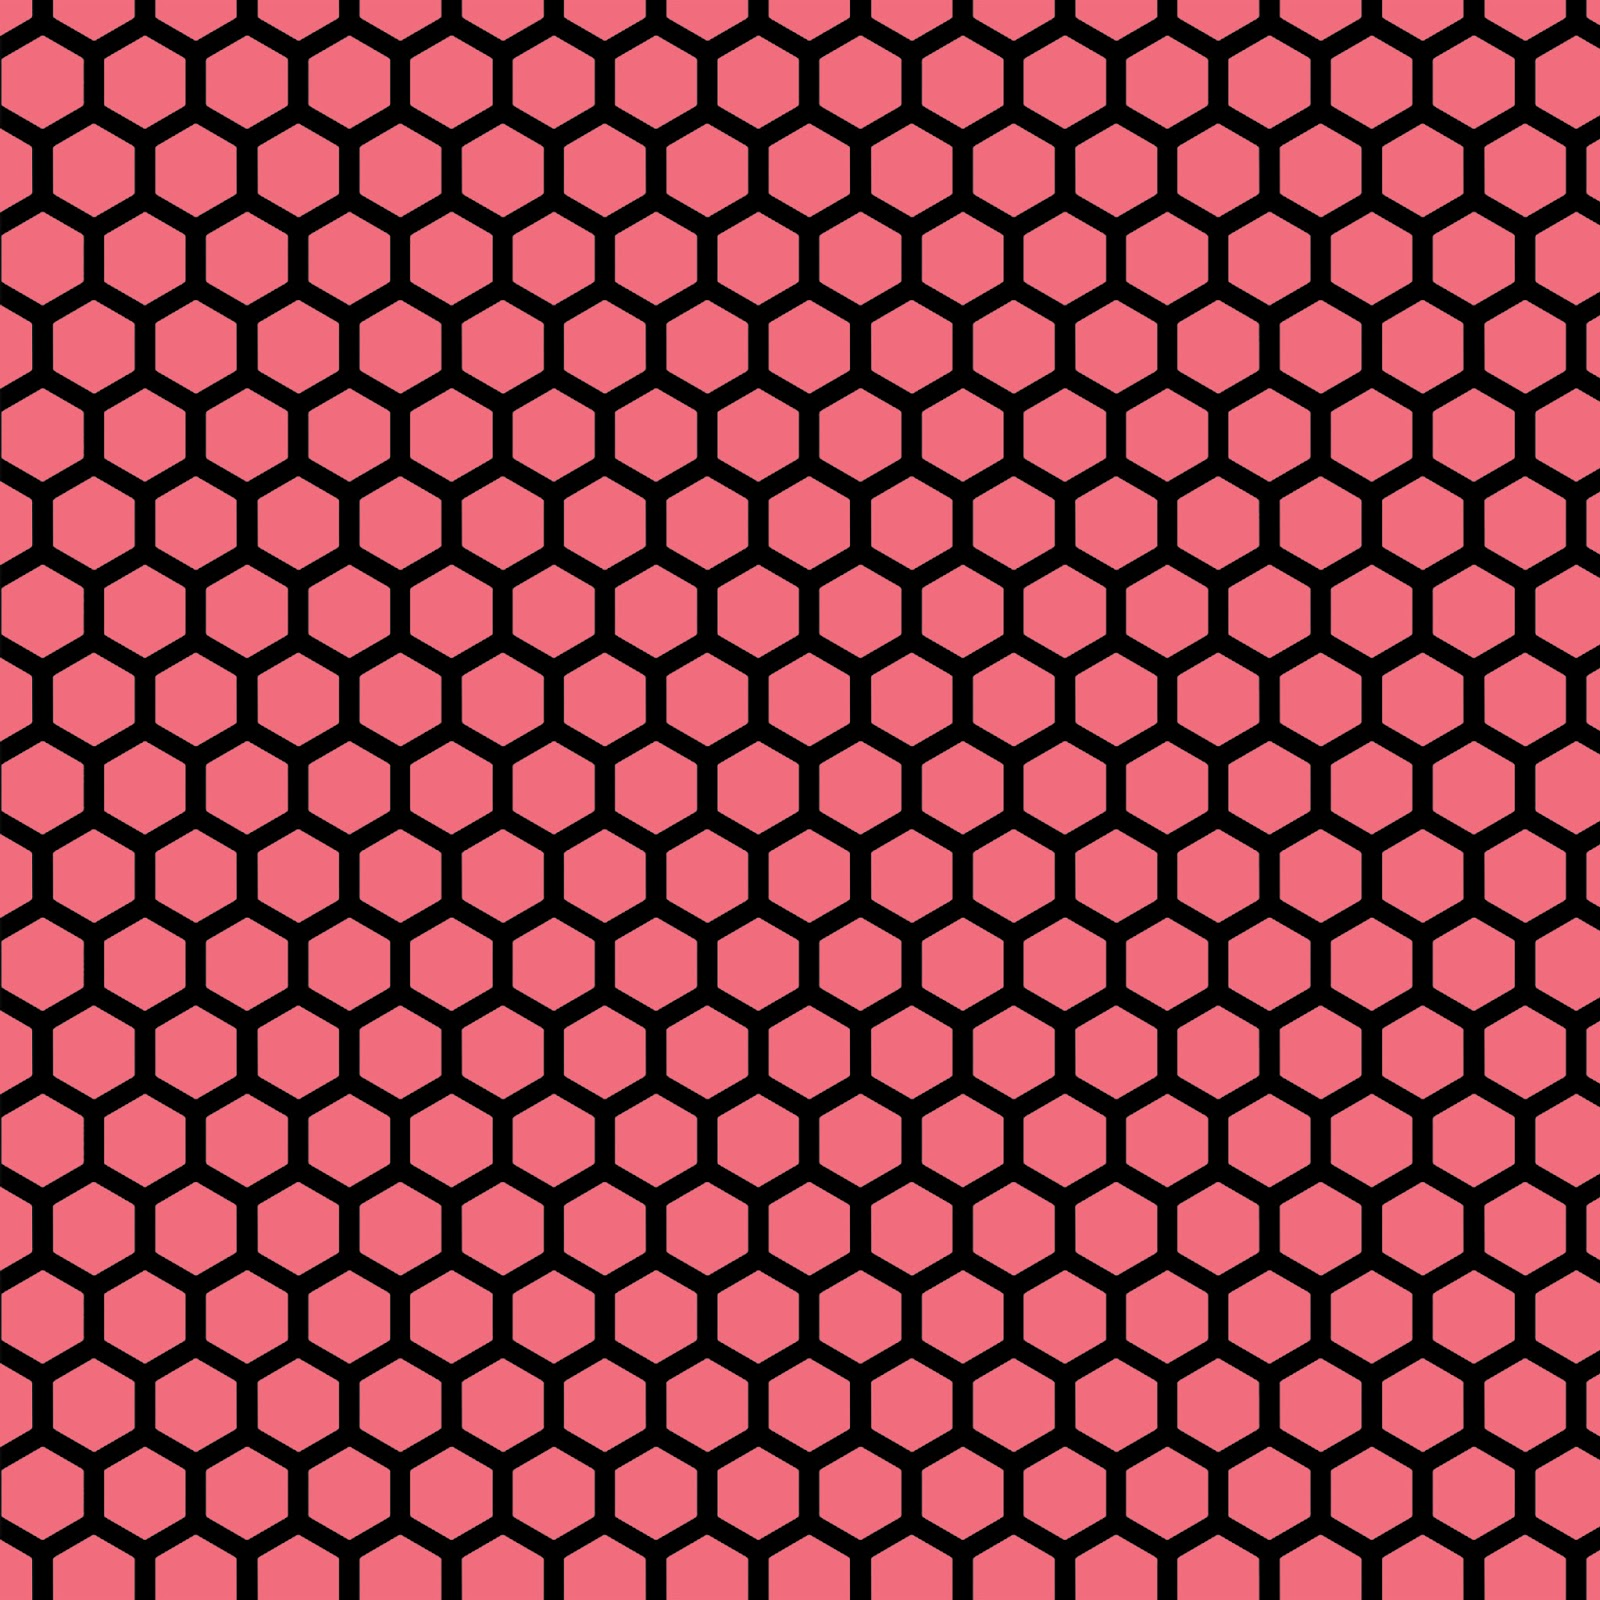 Black Pink And Silver Wallpaper Doodlecraft 15 Colorful Hues Hexagon Honeycomb Background